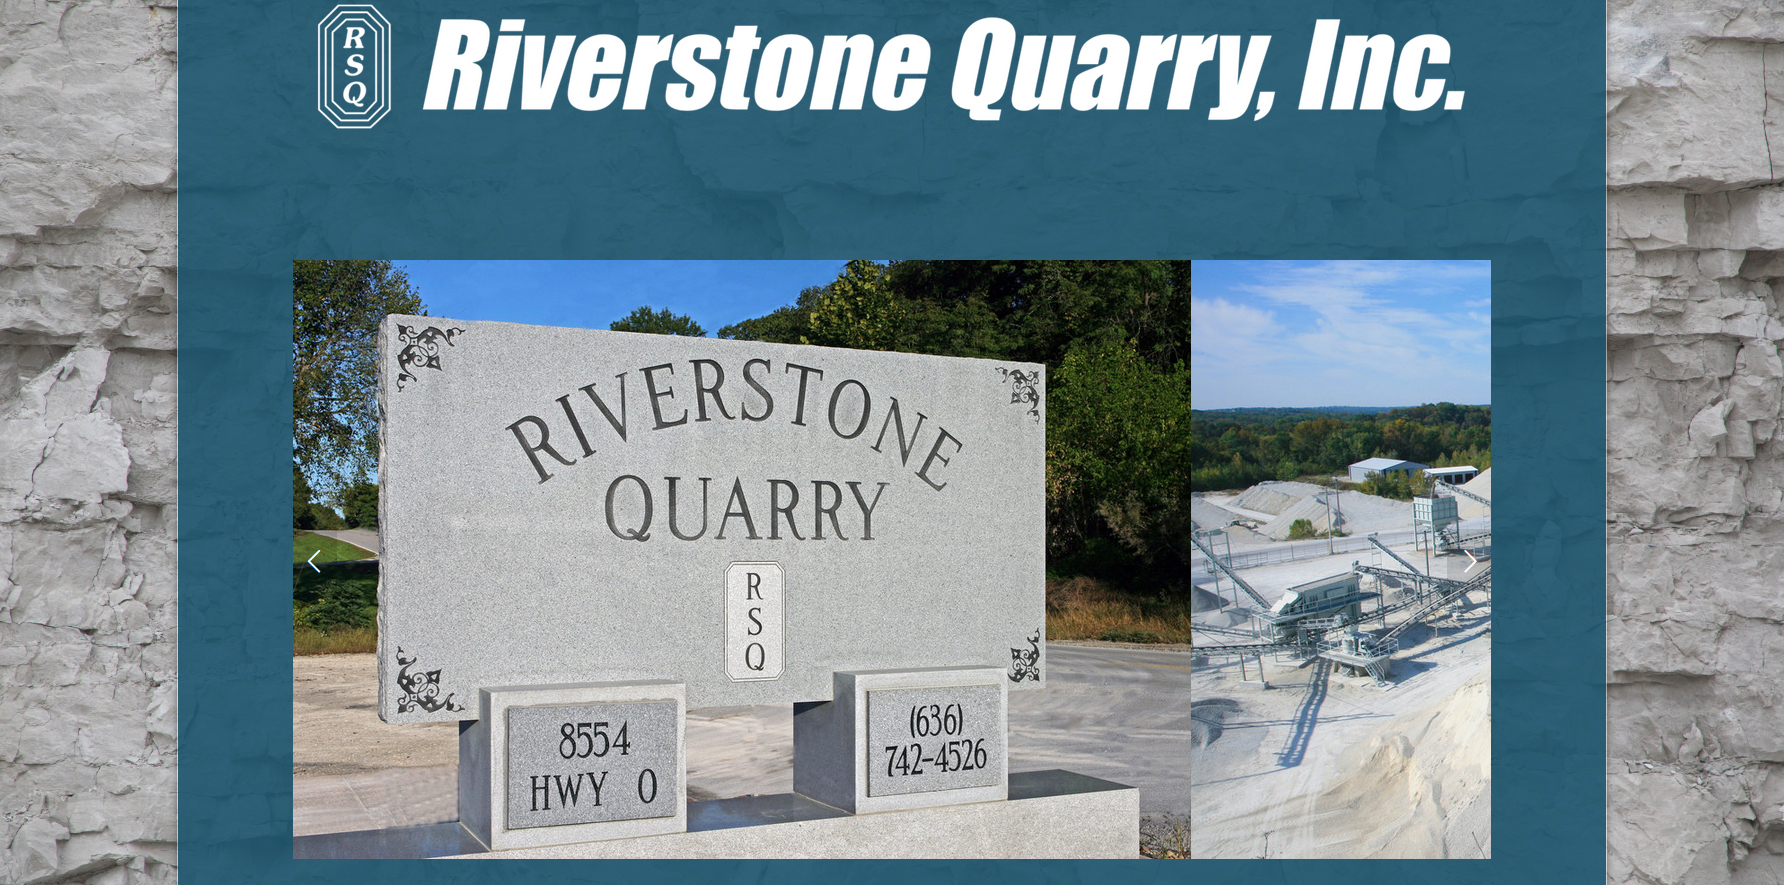 Riverstone Quarry, Inc. is a family owned Missouri limestone aggregate producer, specializing in serving the surrounding community with reliable service and quality materials.